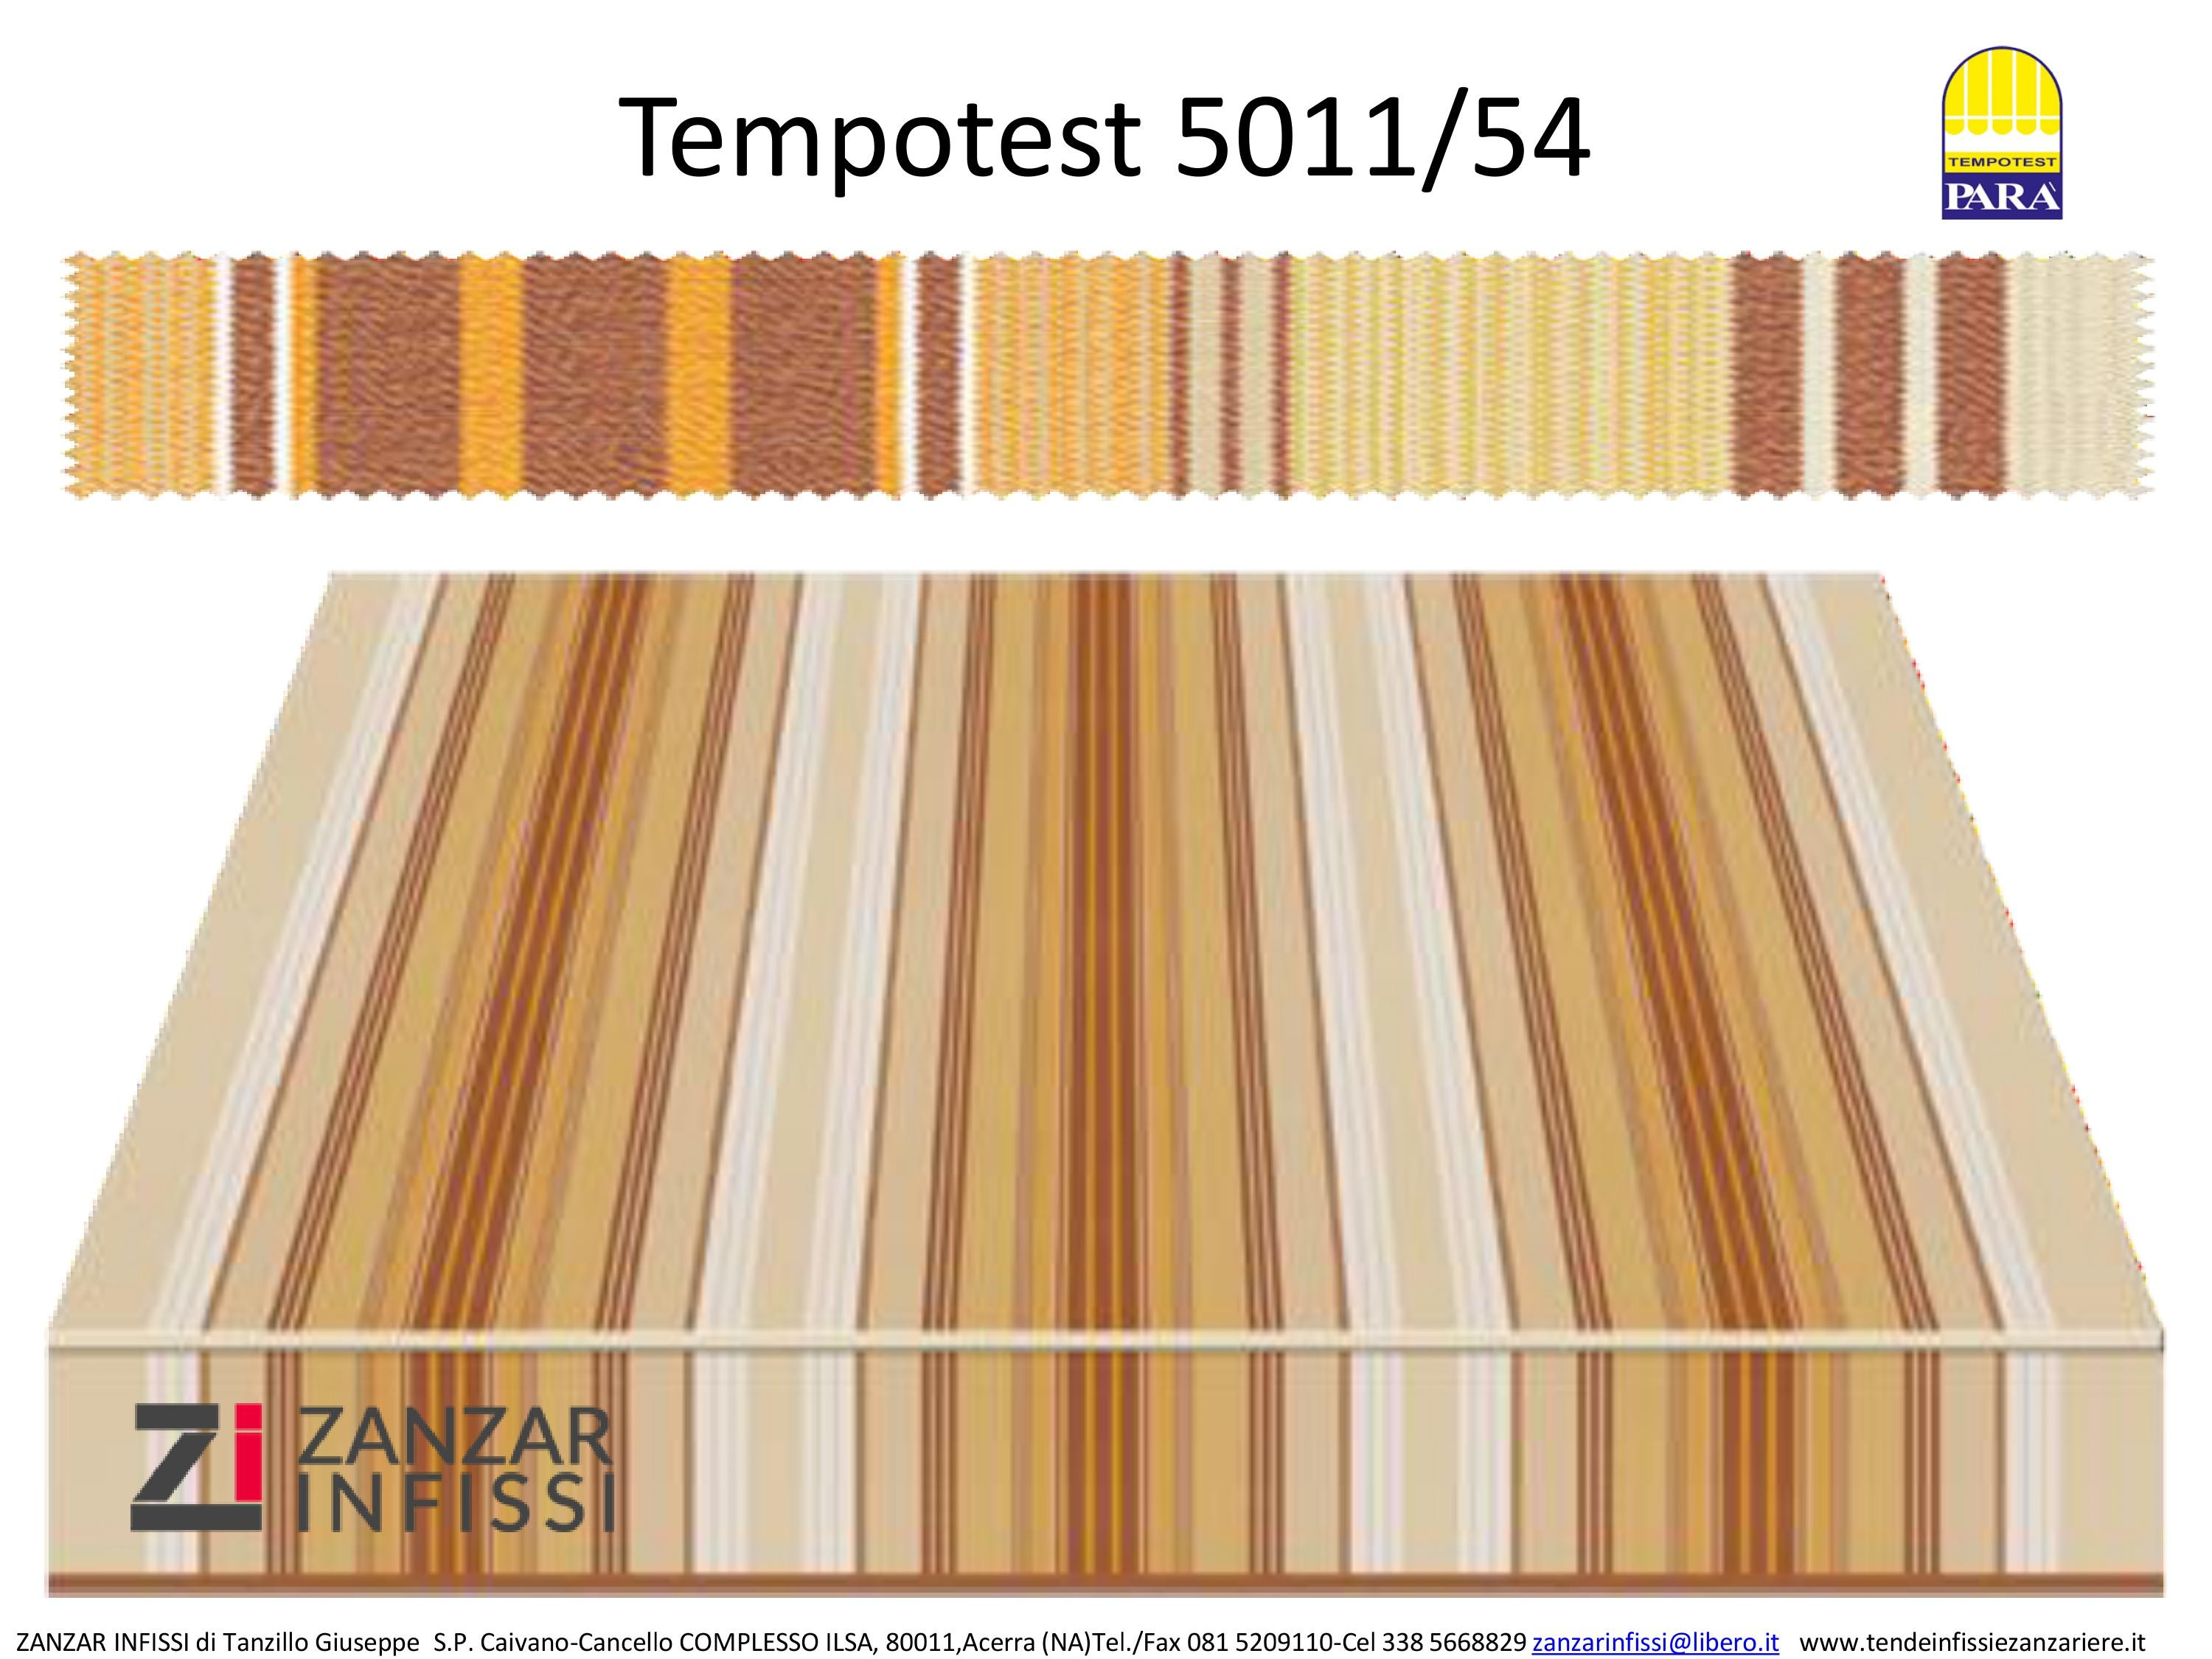 Tempotest 5011/54